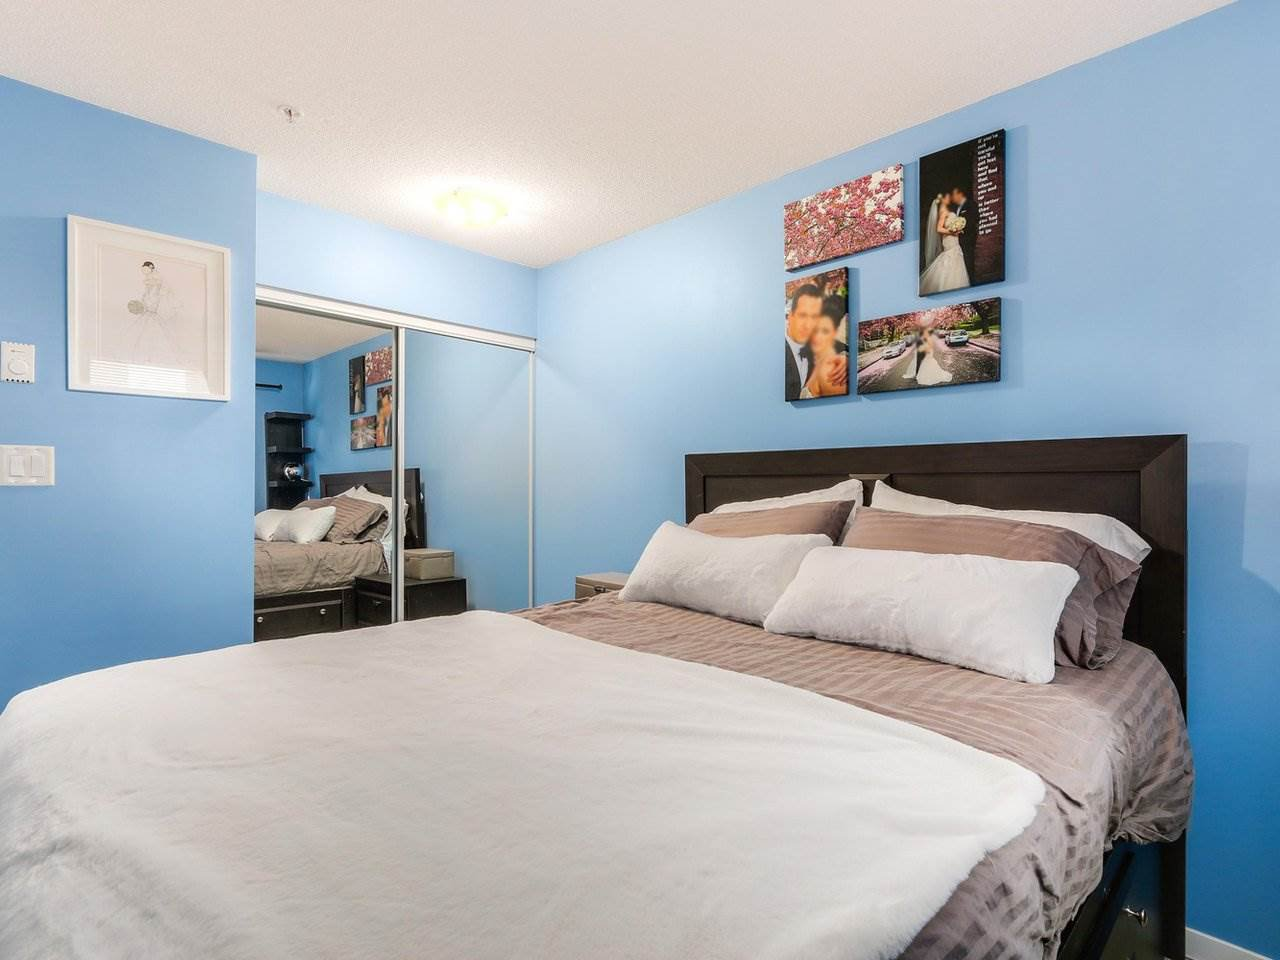 Photo 13: Photos: 119 672 W 6TH AVENUE in Vancouver: Fairview VW Townhouse for sale (Vancouver West)  : MLS®# R2401186